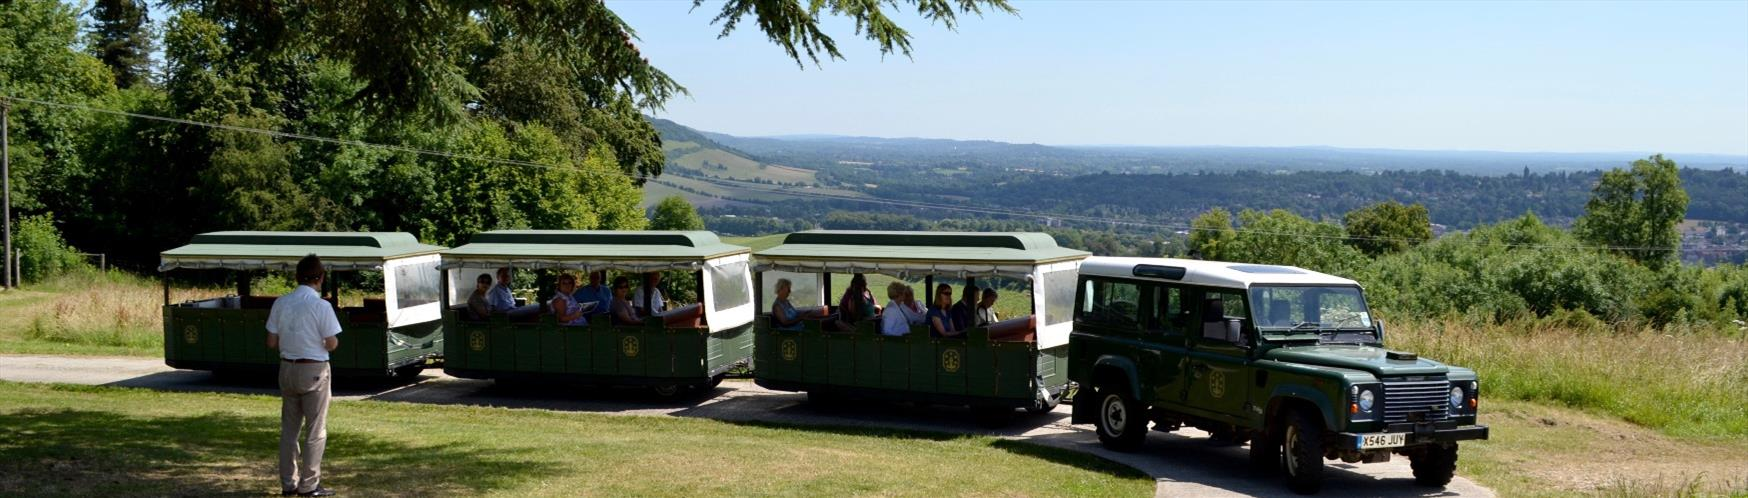 Discover Denbies Wine Estate by land train